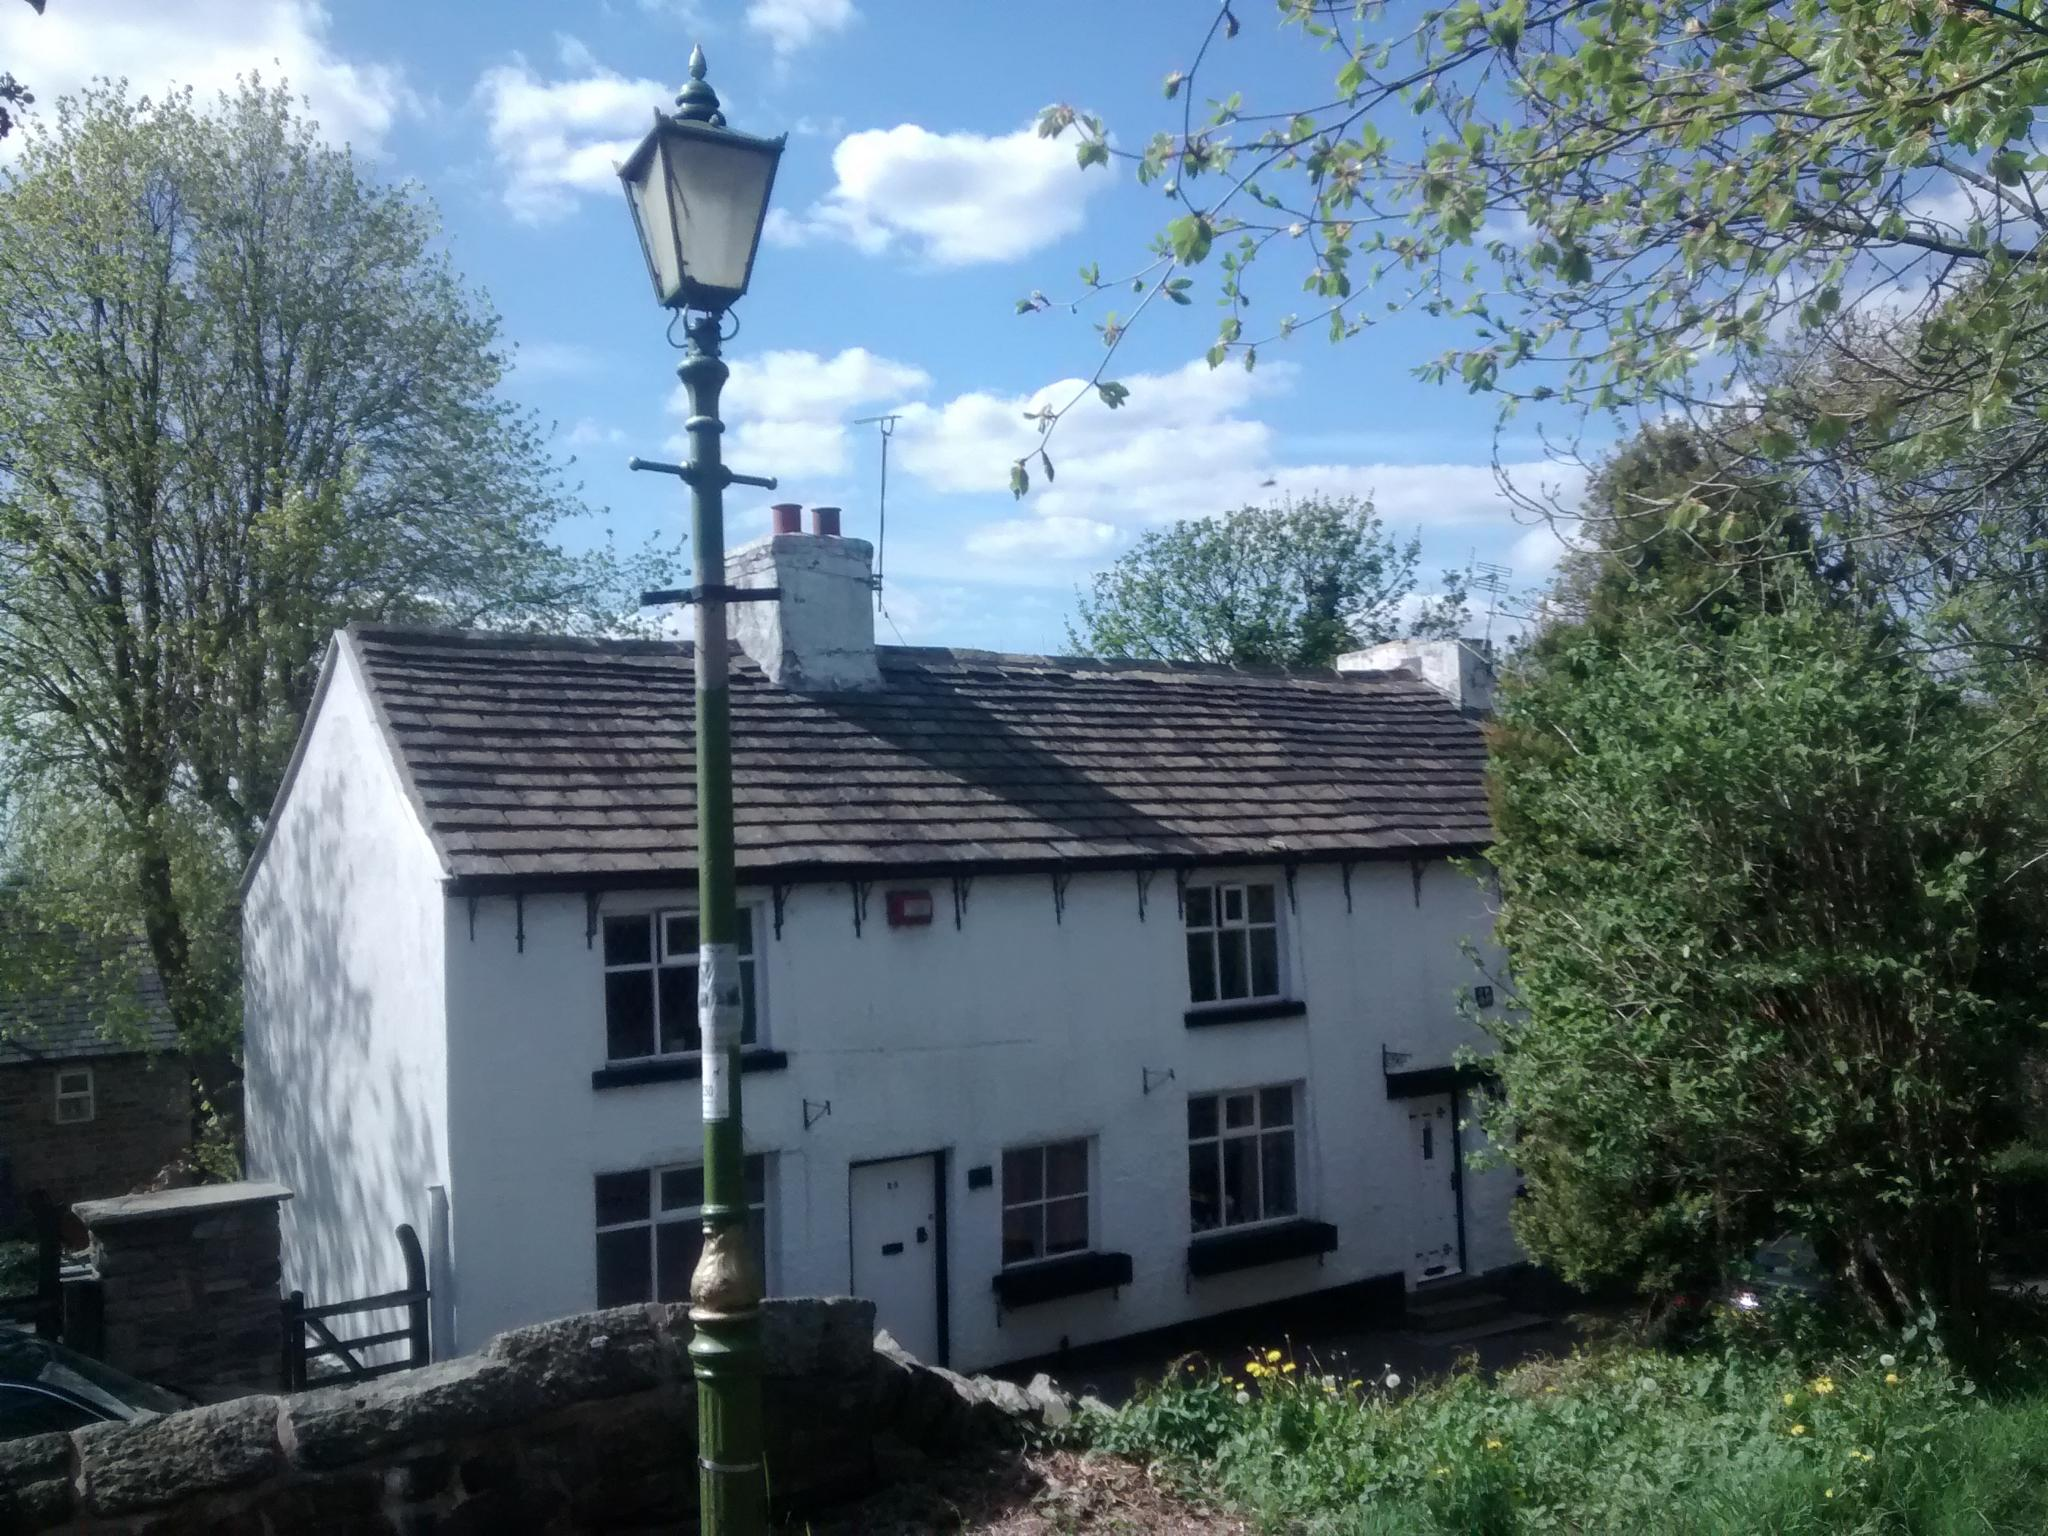 Gibble Gabble Cottage Broadbottom Cheshire UK by dysonjohn64